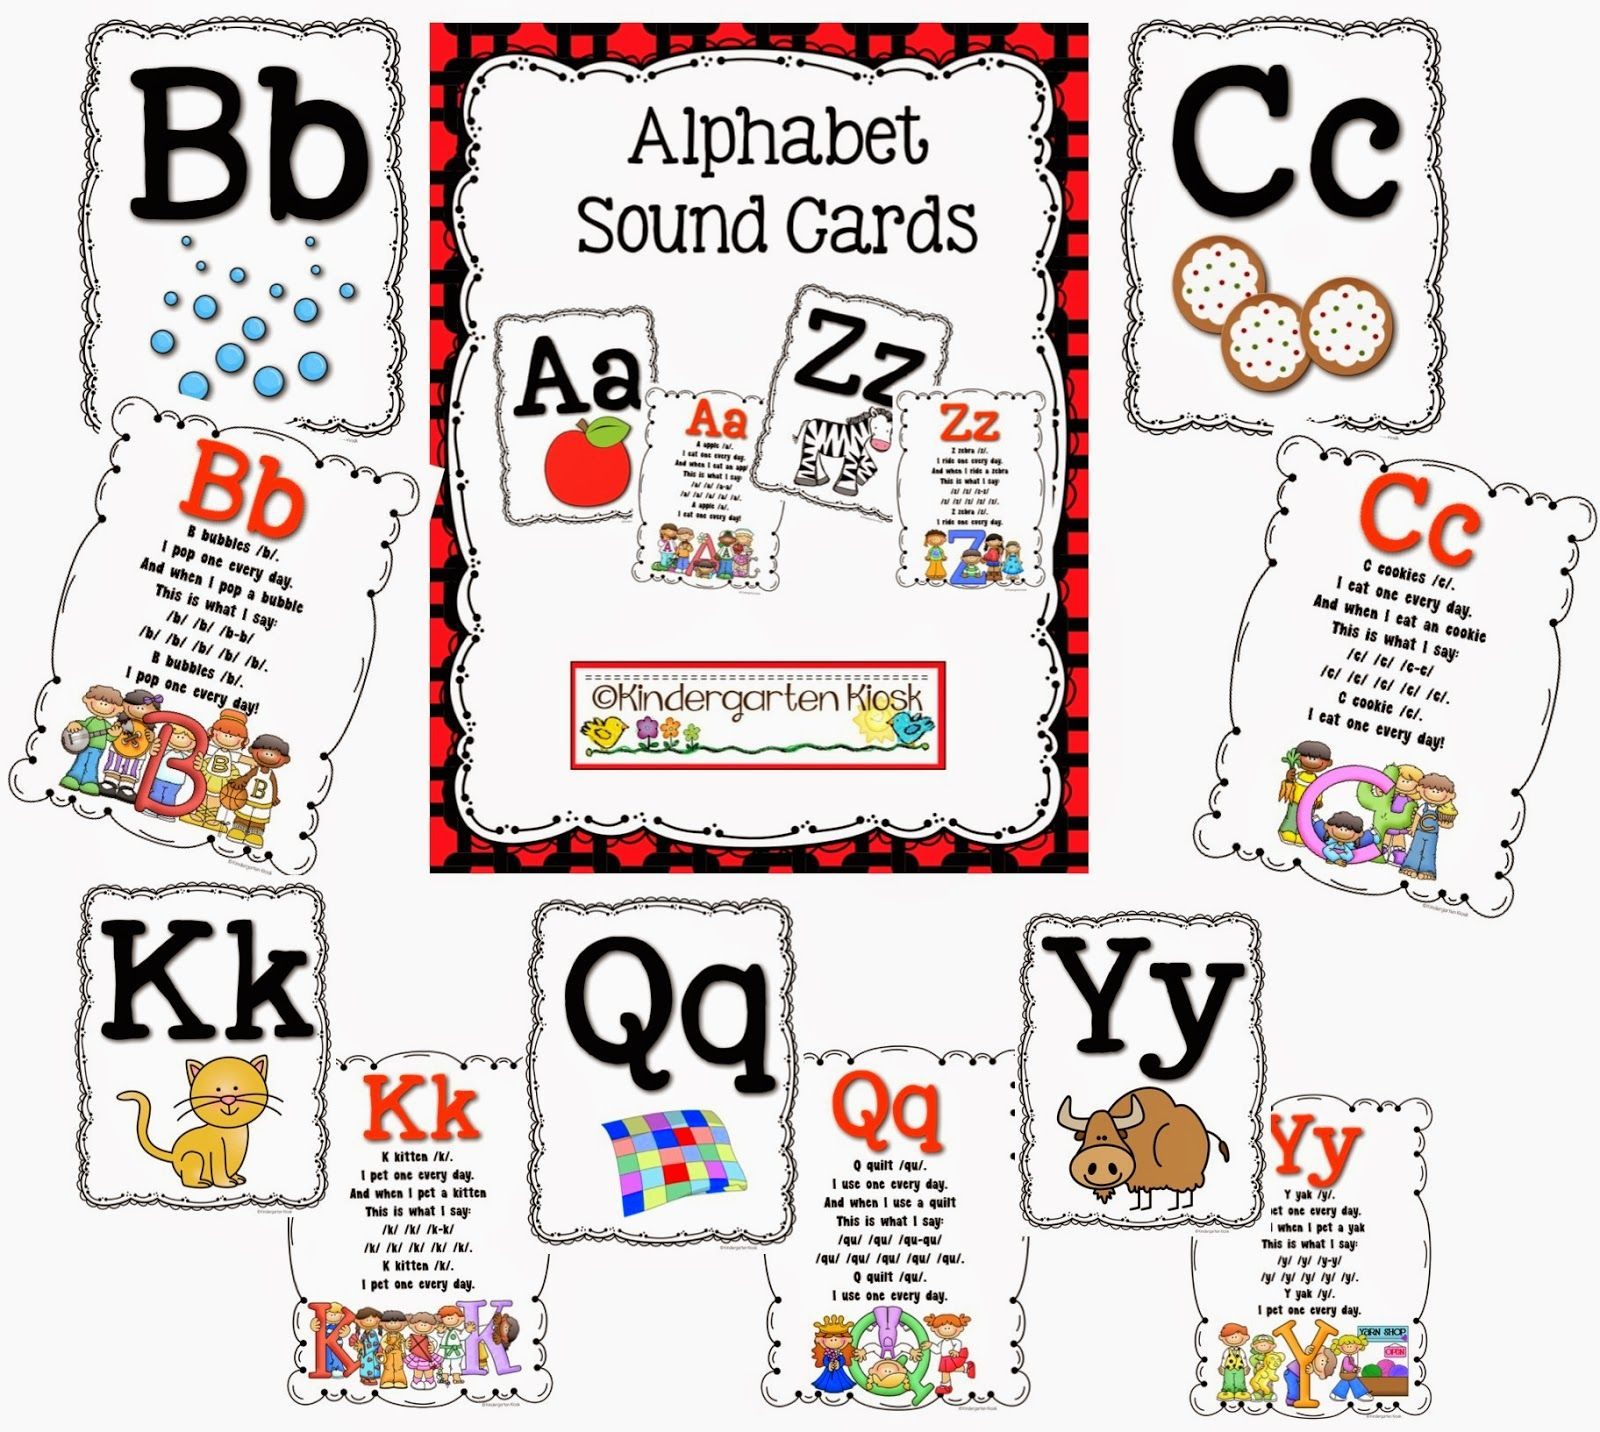 Have You Been Looking For Just The Right Alphabet Sound